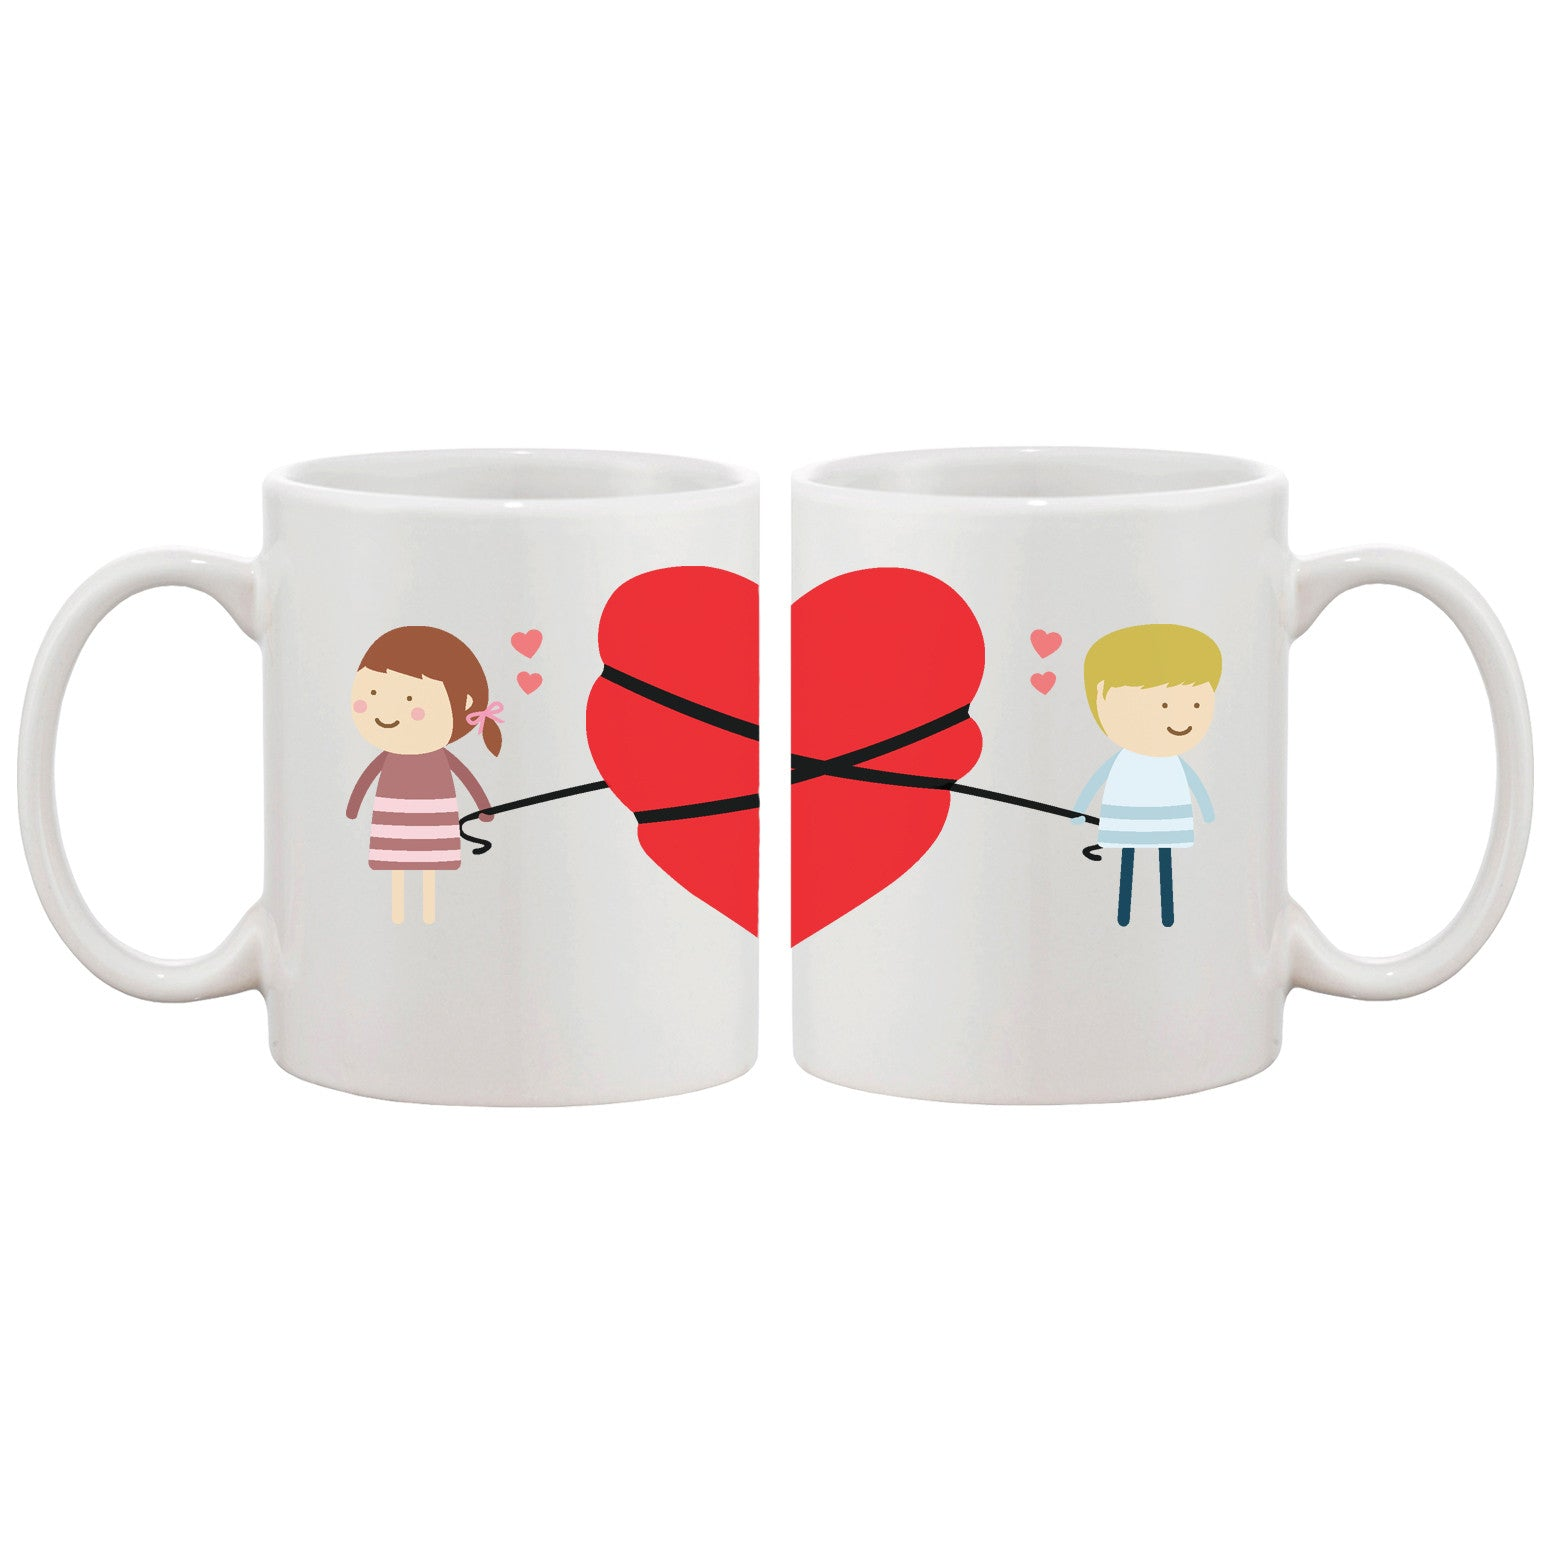 Delightful Love Connecting Couple Mugs Cute Graphic Design Coffee ...